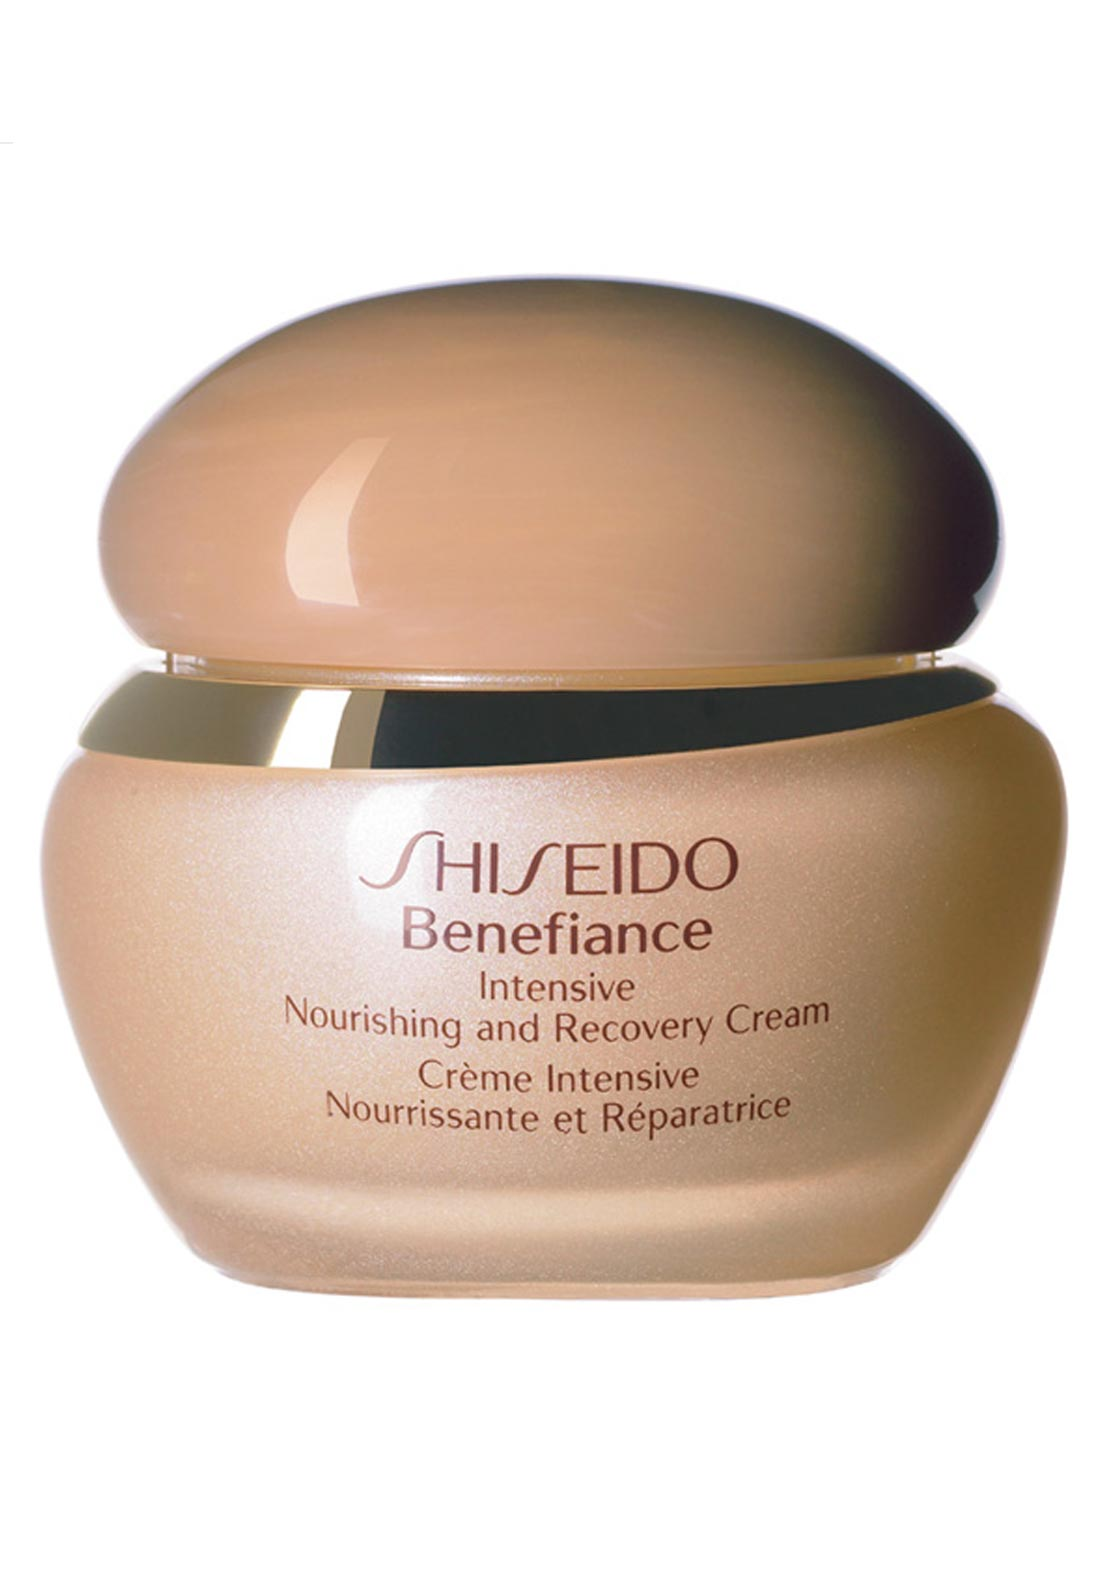 Shiseido Benefiance Intensive Nourishing and Recovery Cream, 50ml